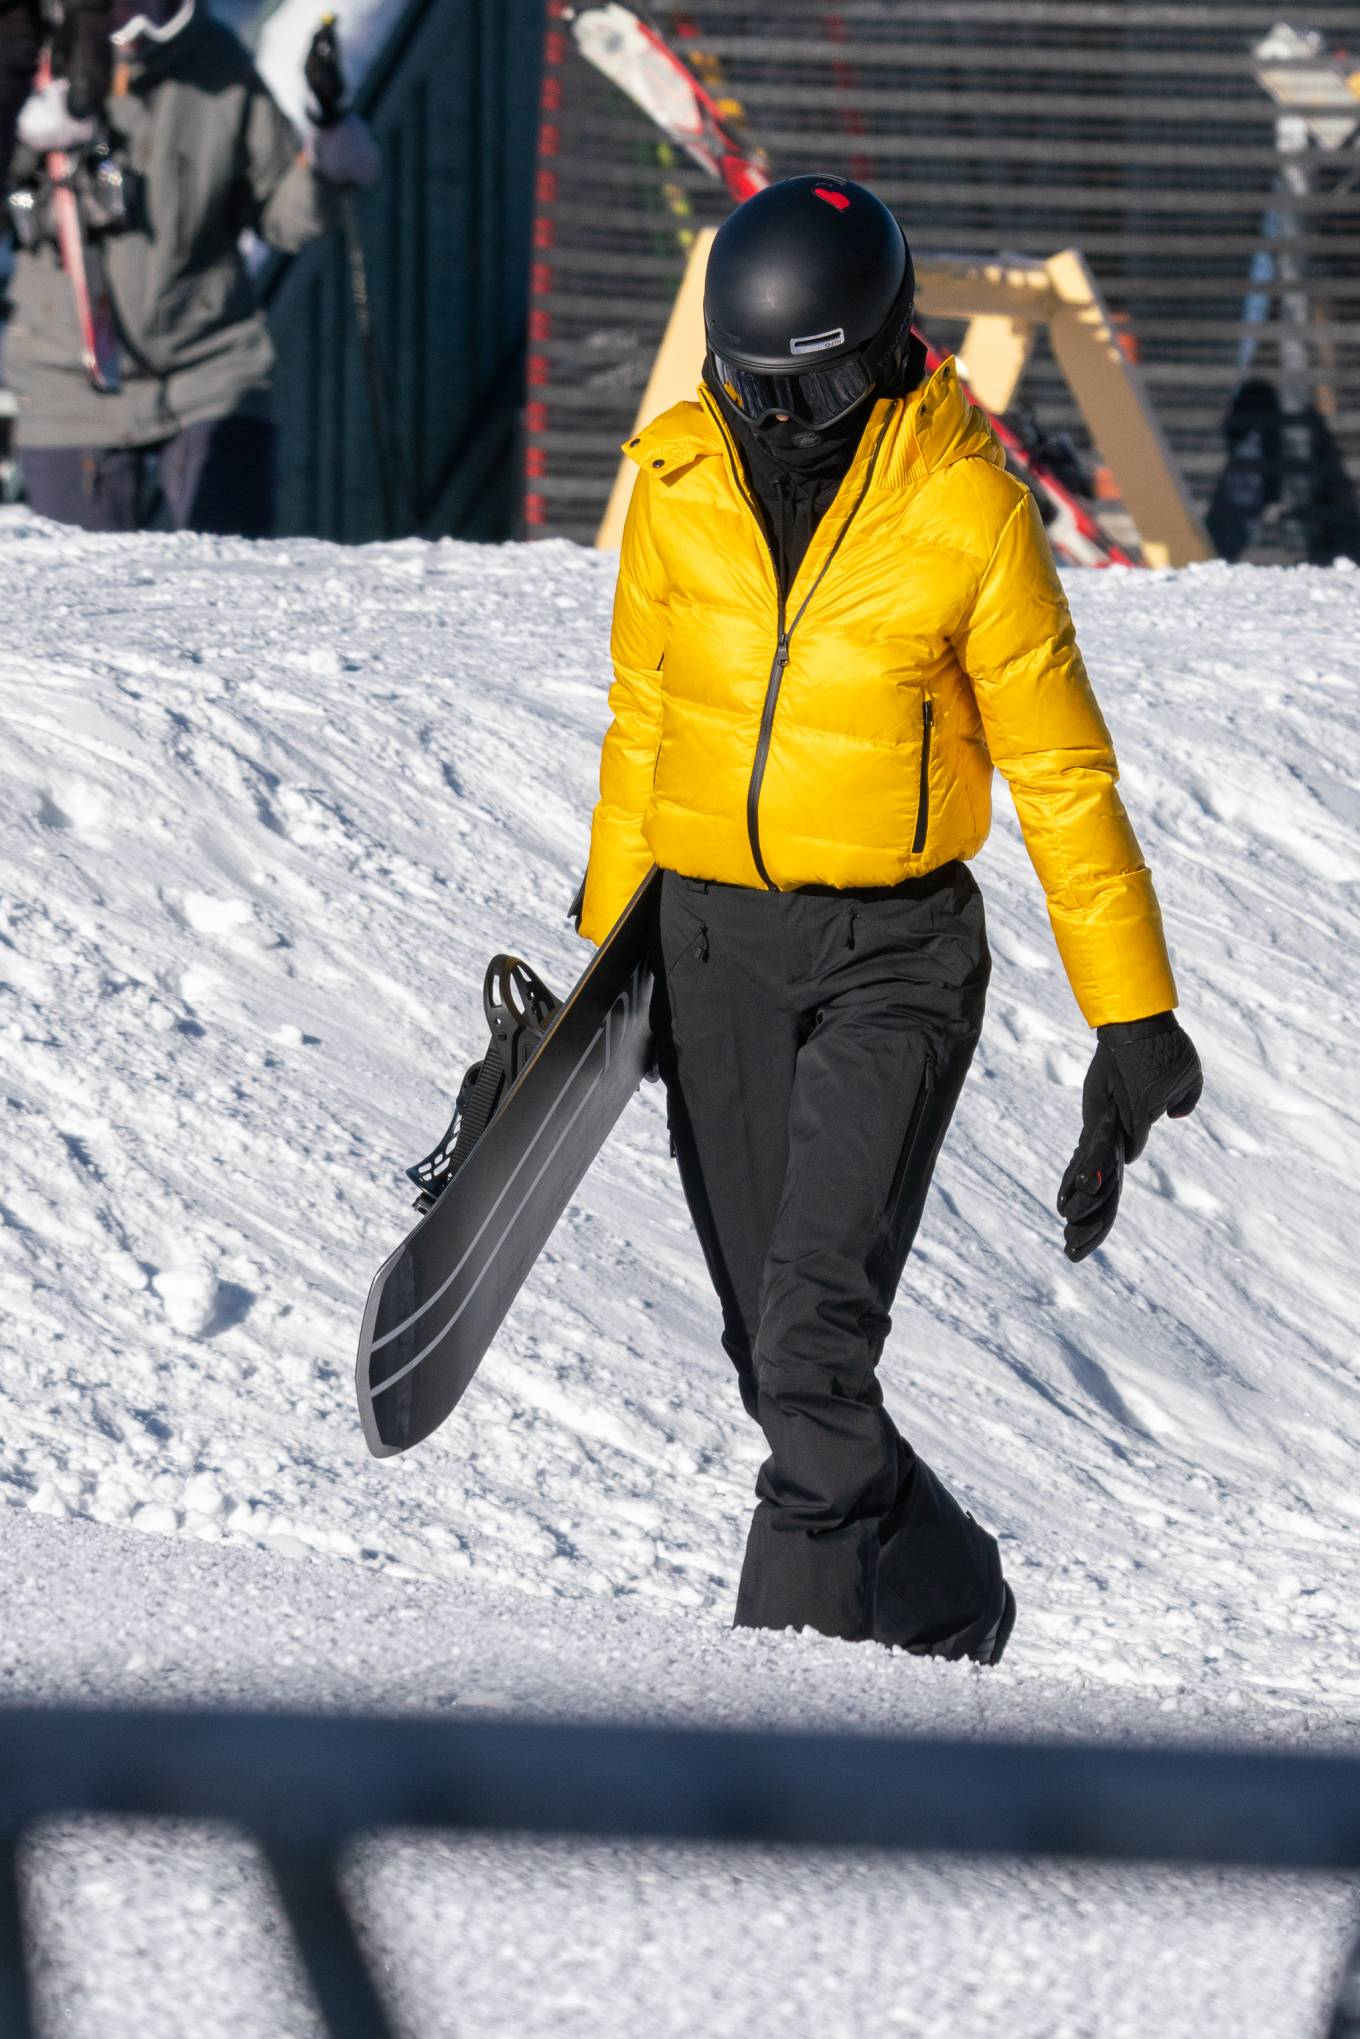 Kendall Jenner - In a ticket-me-yellow Prada jacket and black Prada trousers in Aspen